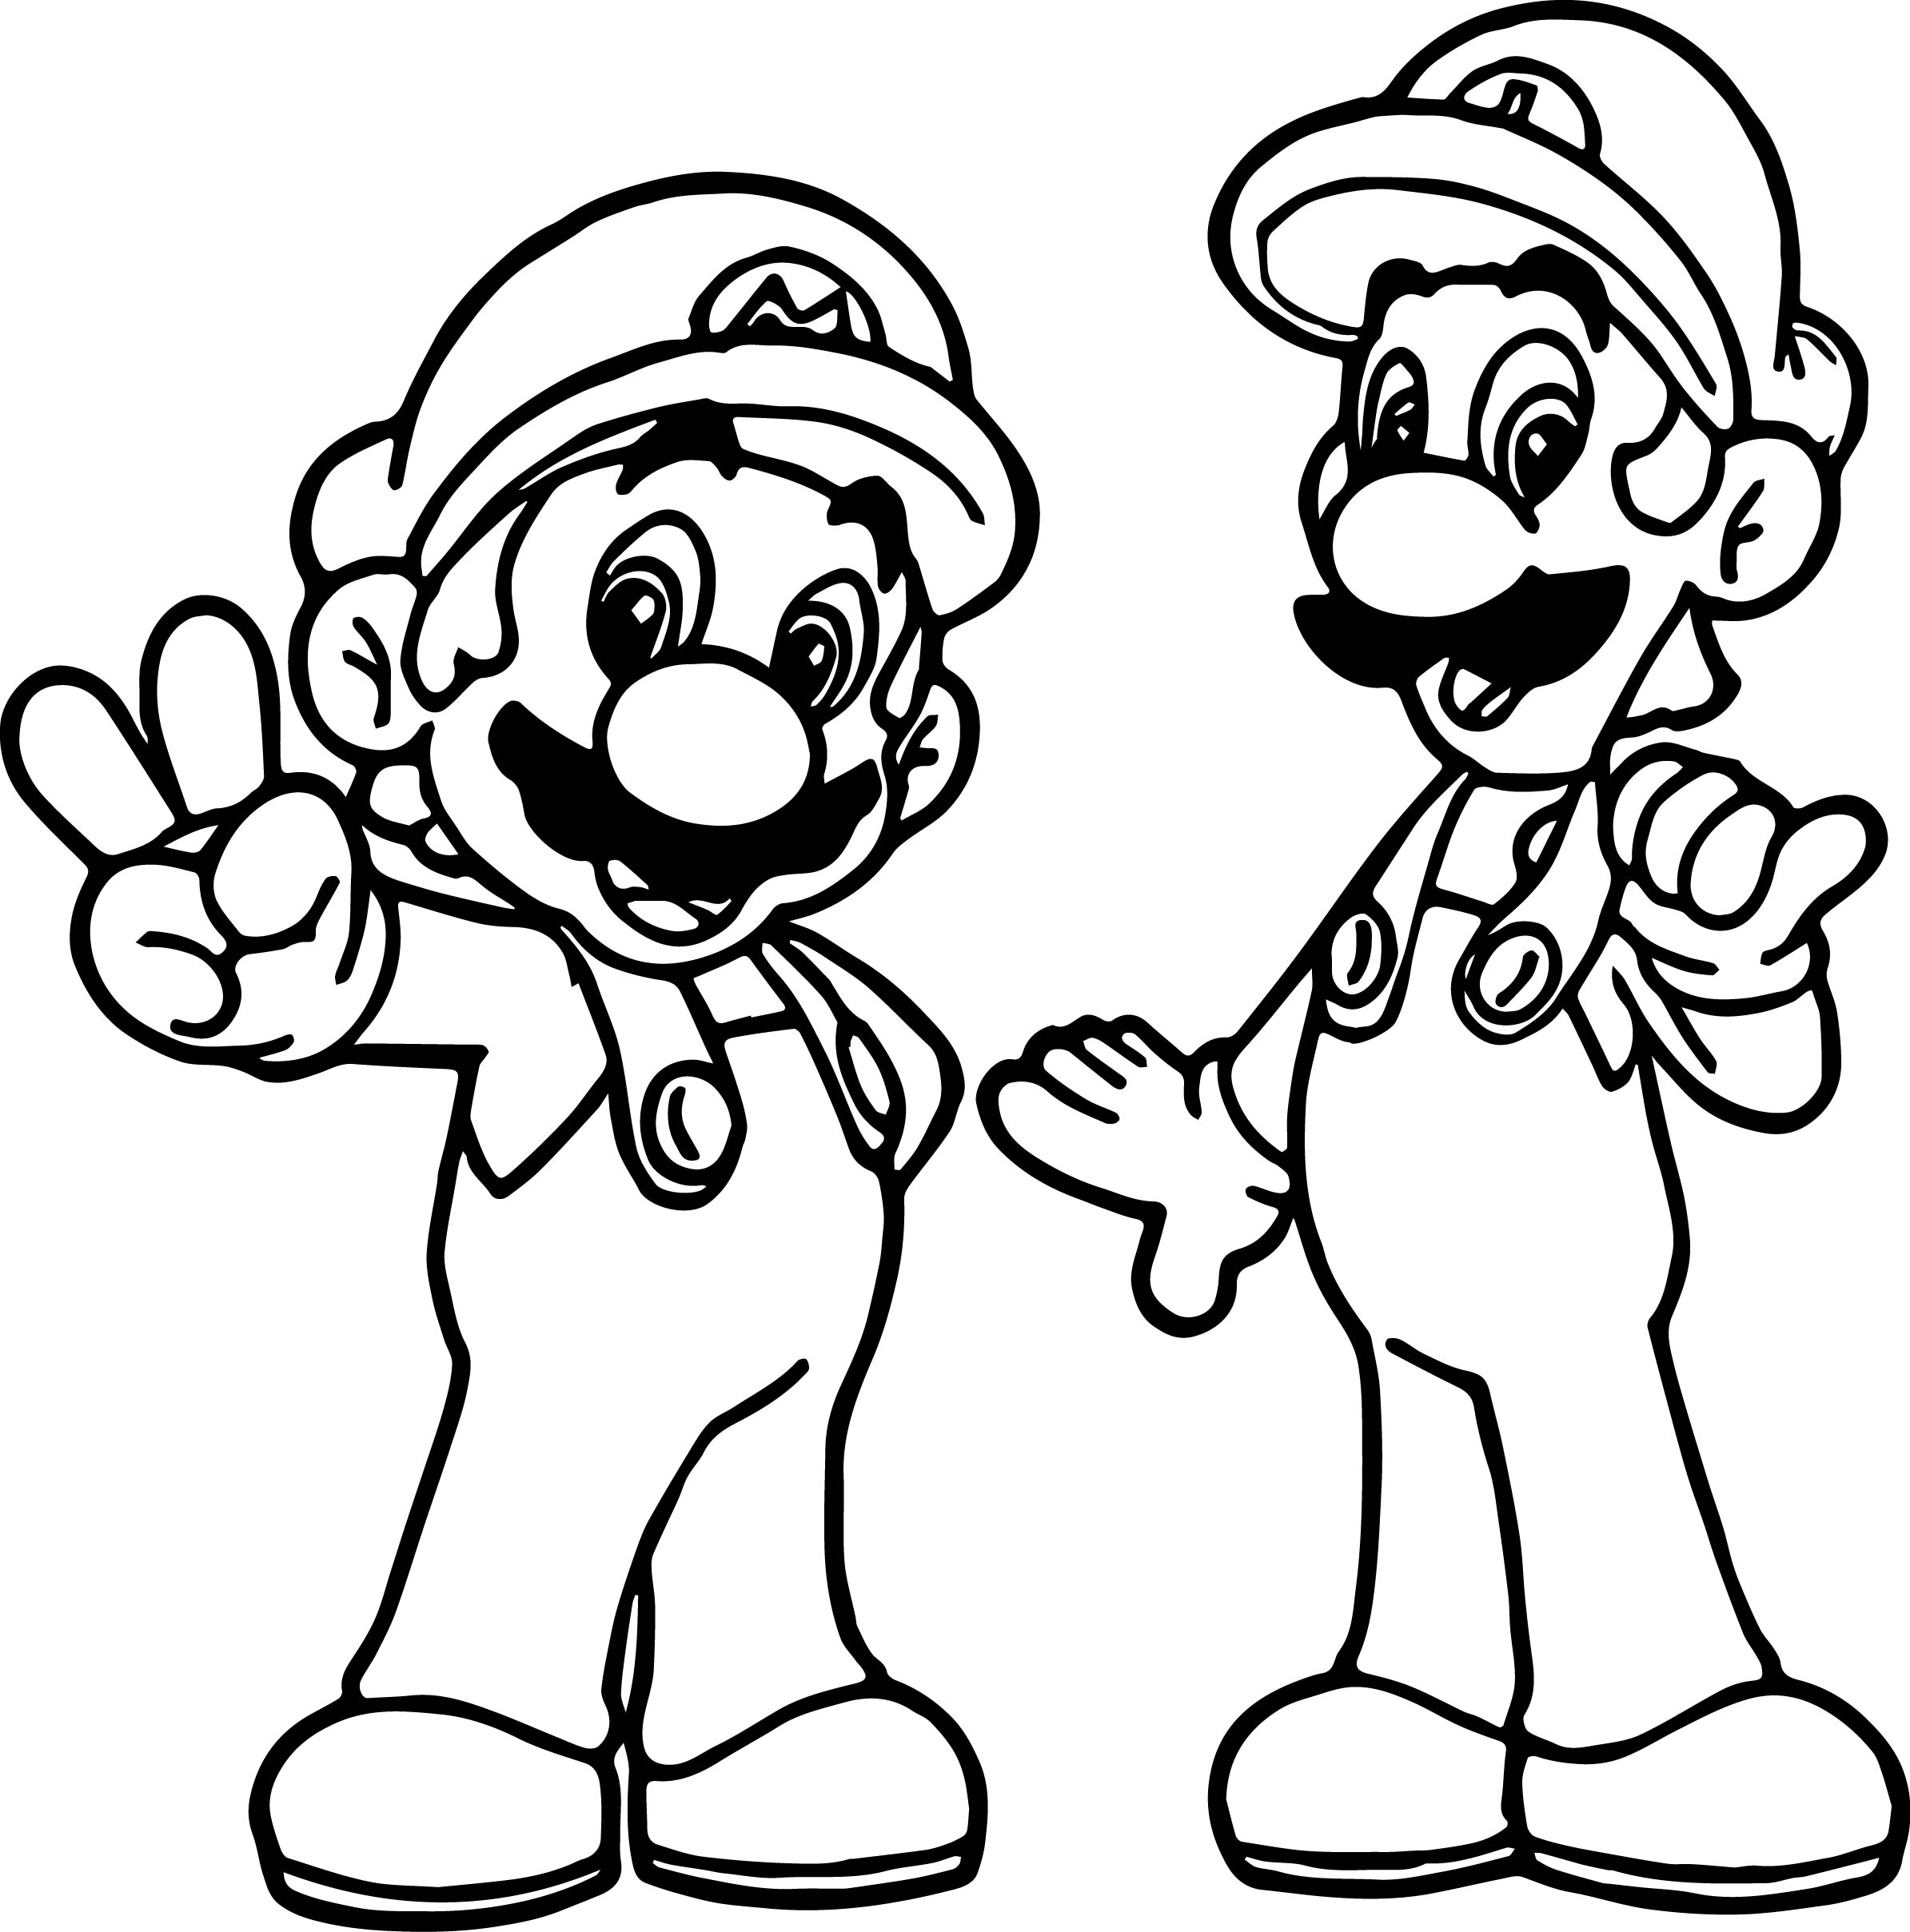 Super Mario And Luigi All Right Coloring Page